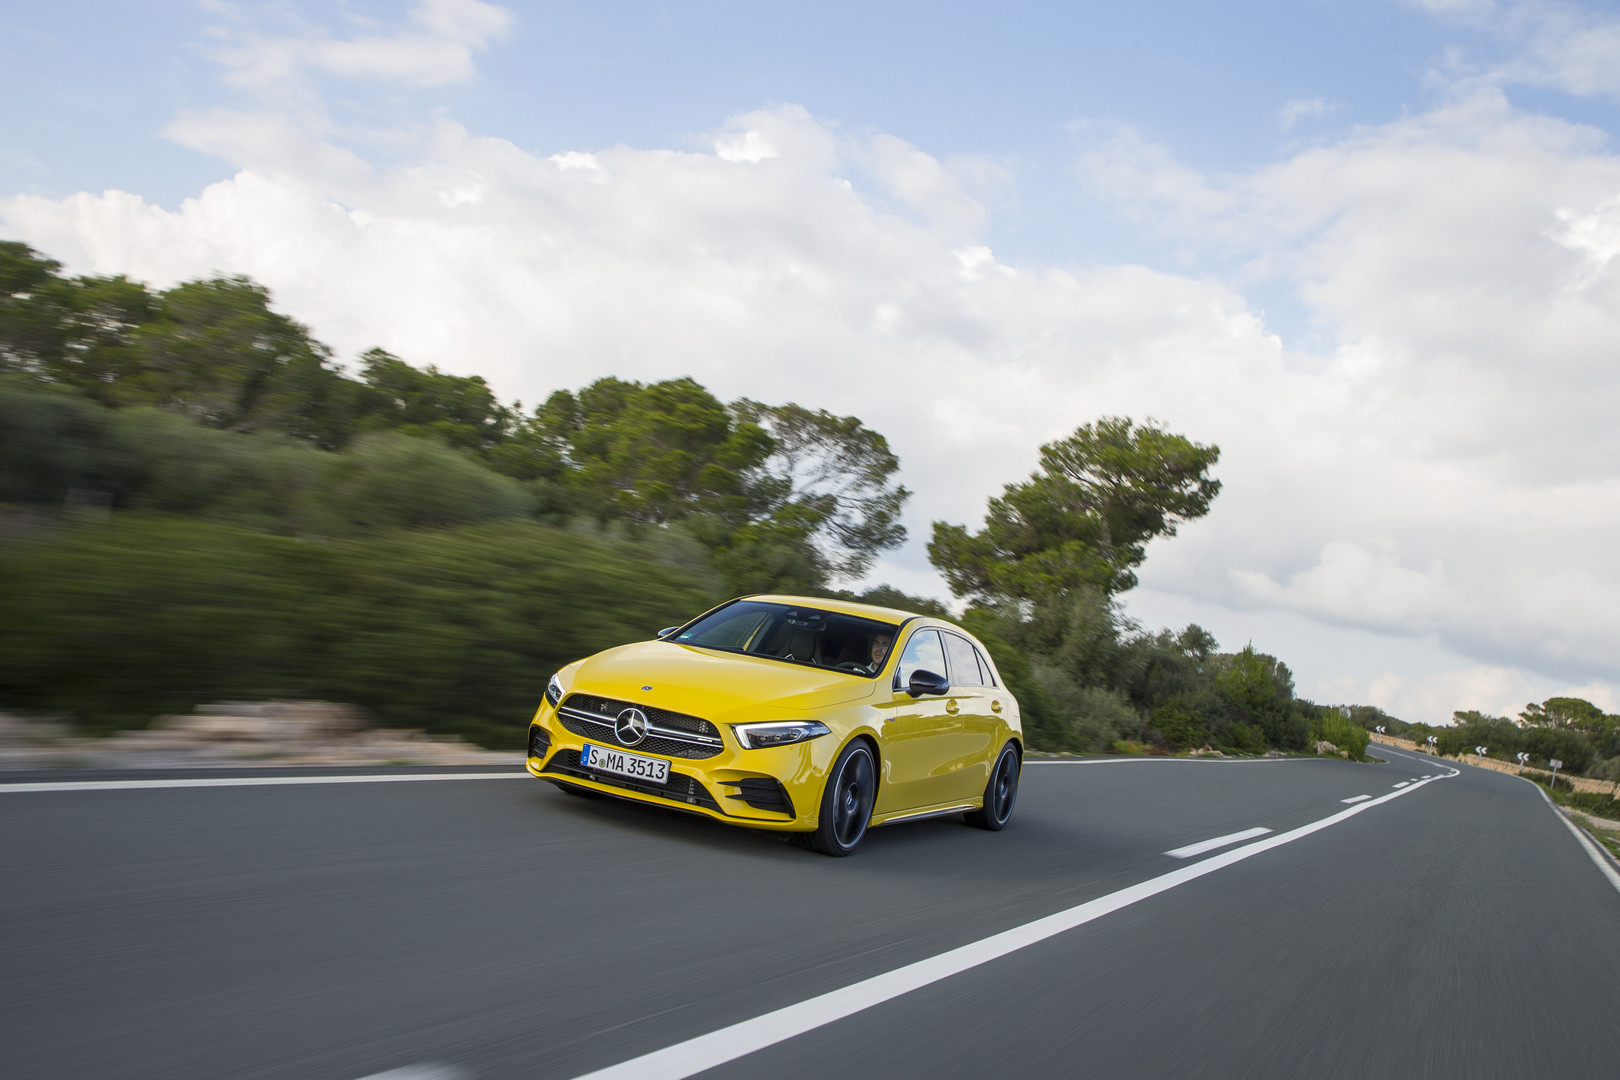 Sun Yellow Mercedes-AMG A35